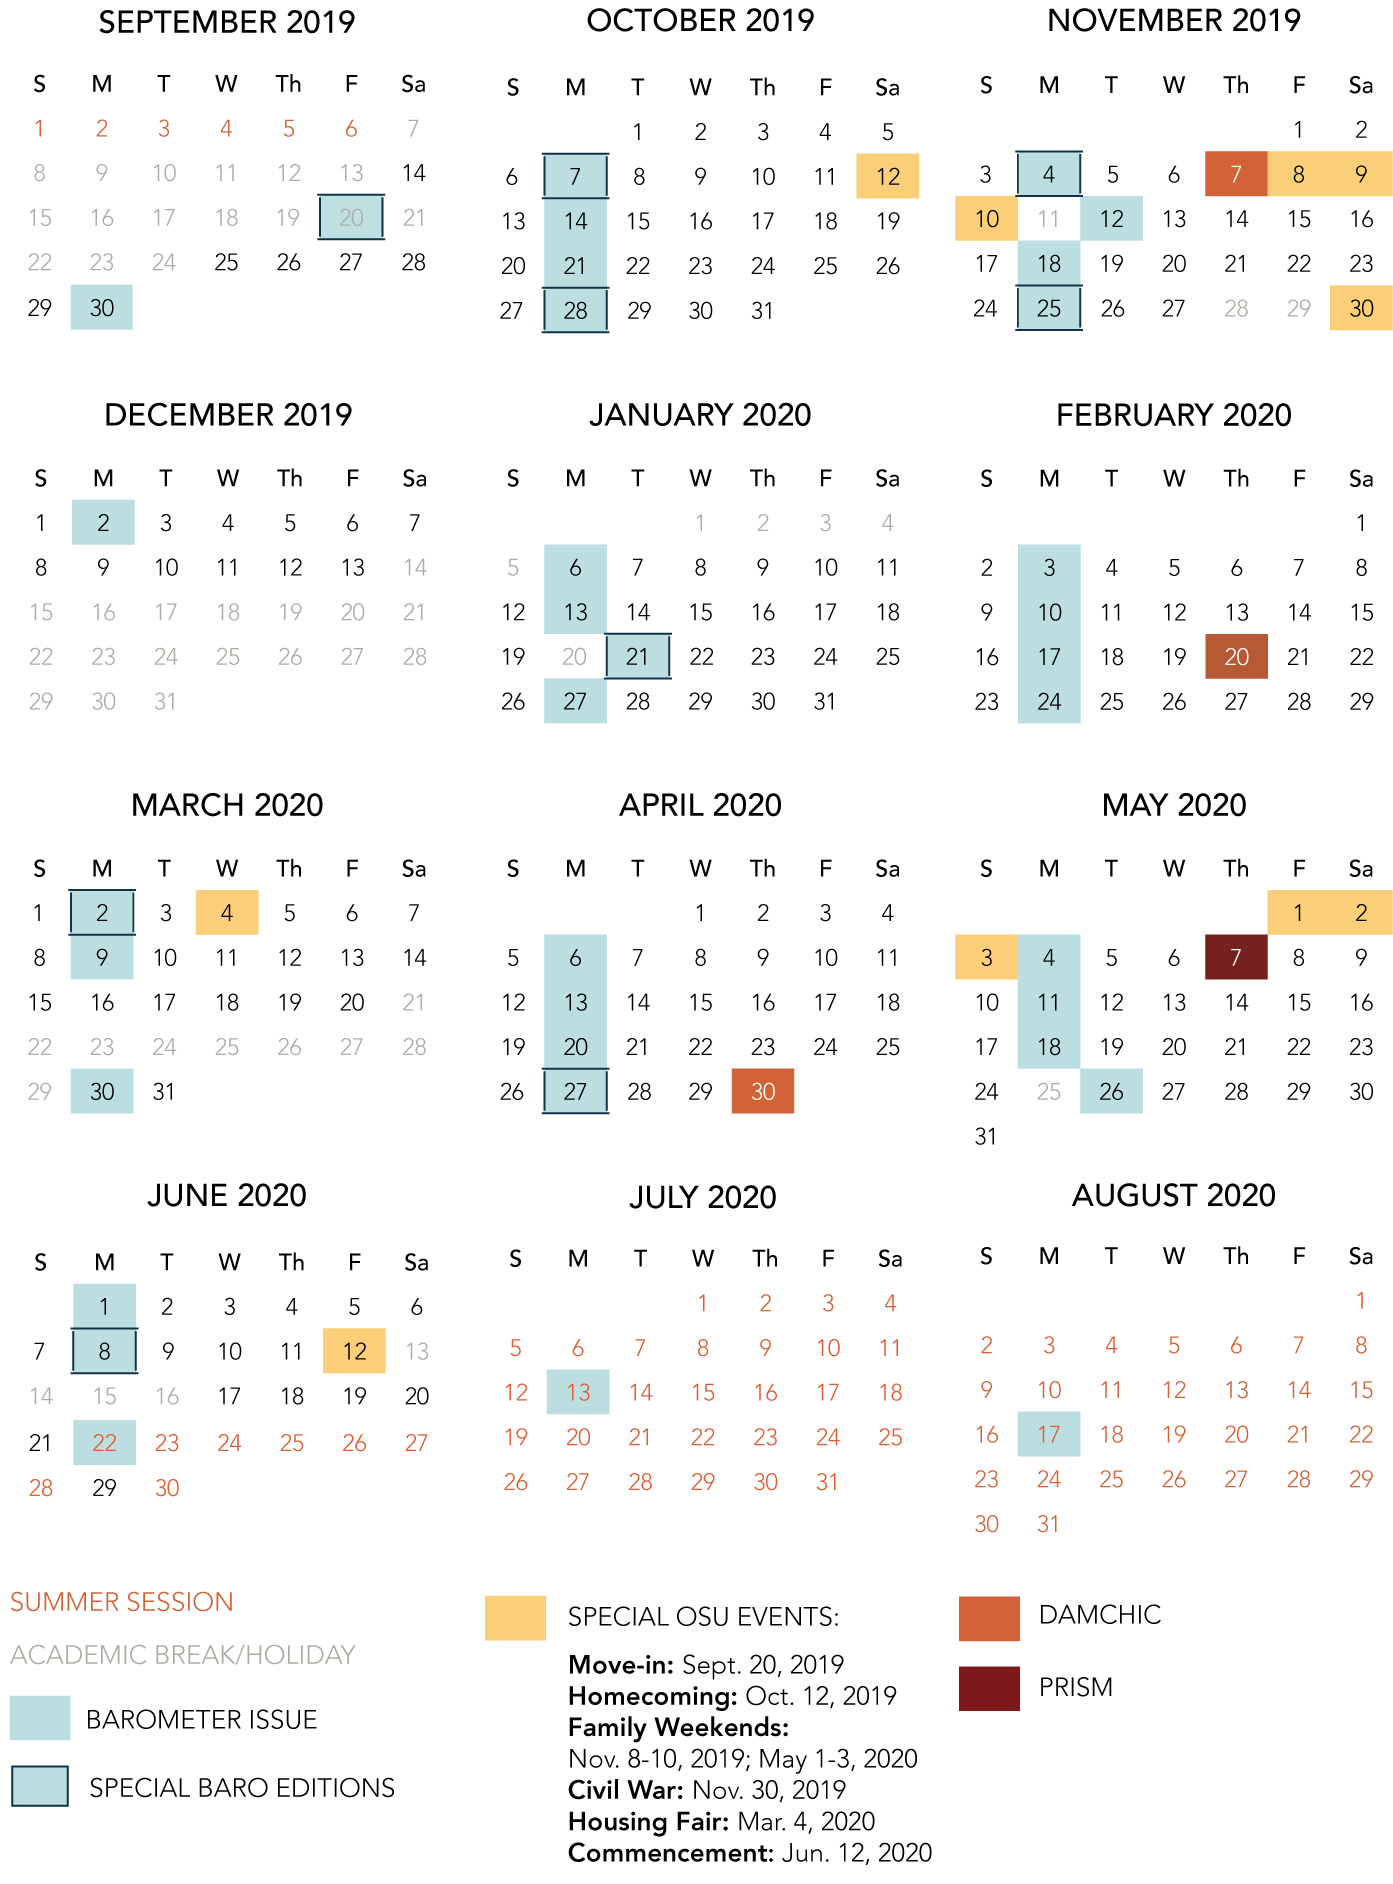 Calendar of 2019-20 deadlines for submitting advertising to OMN